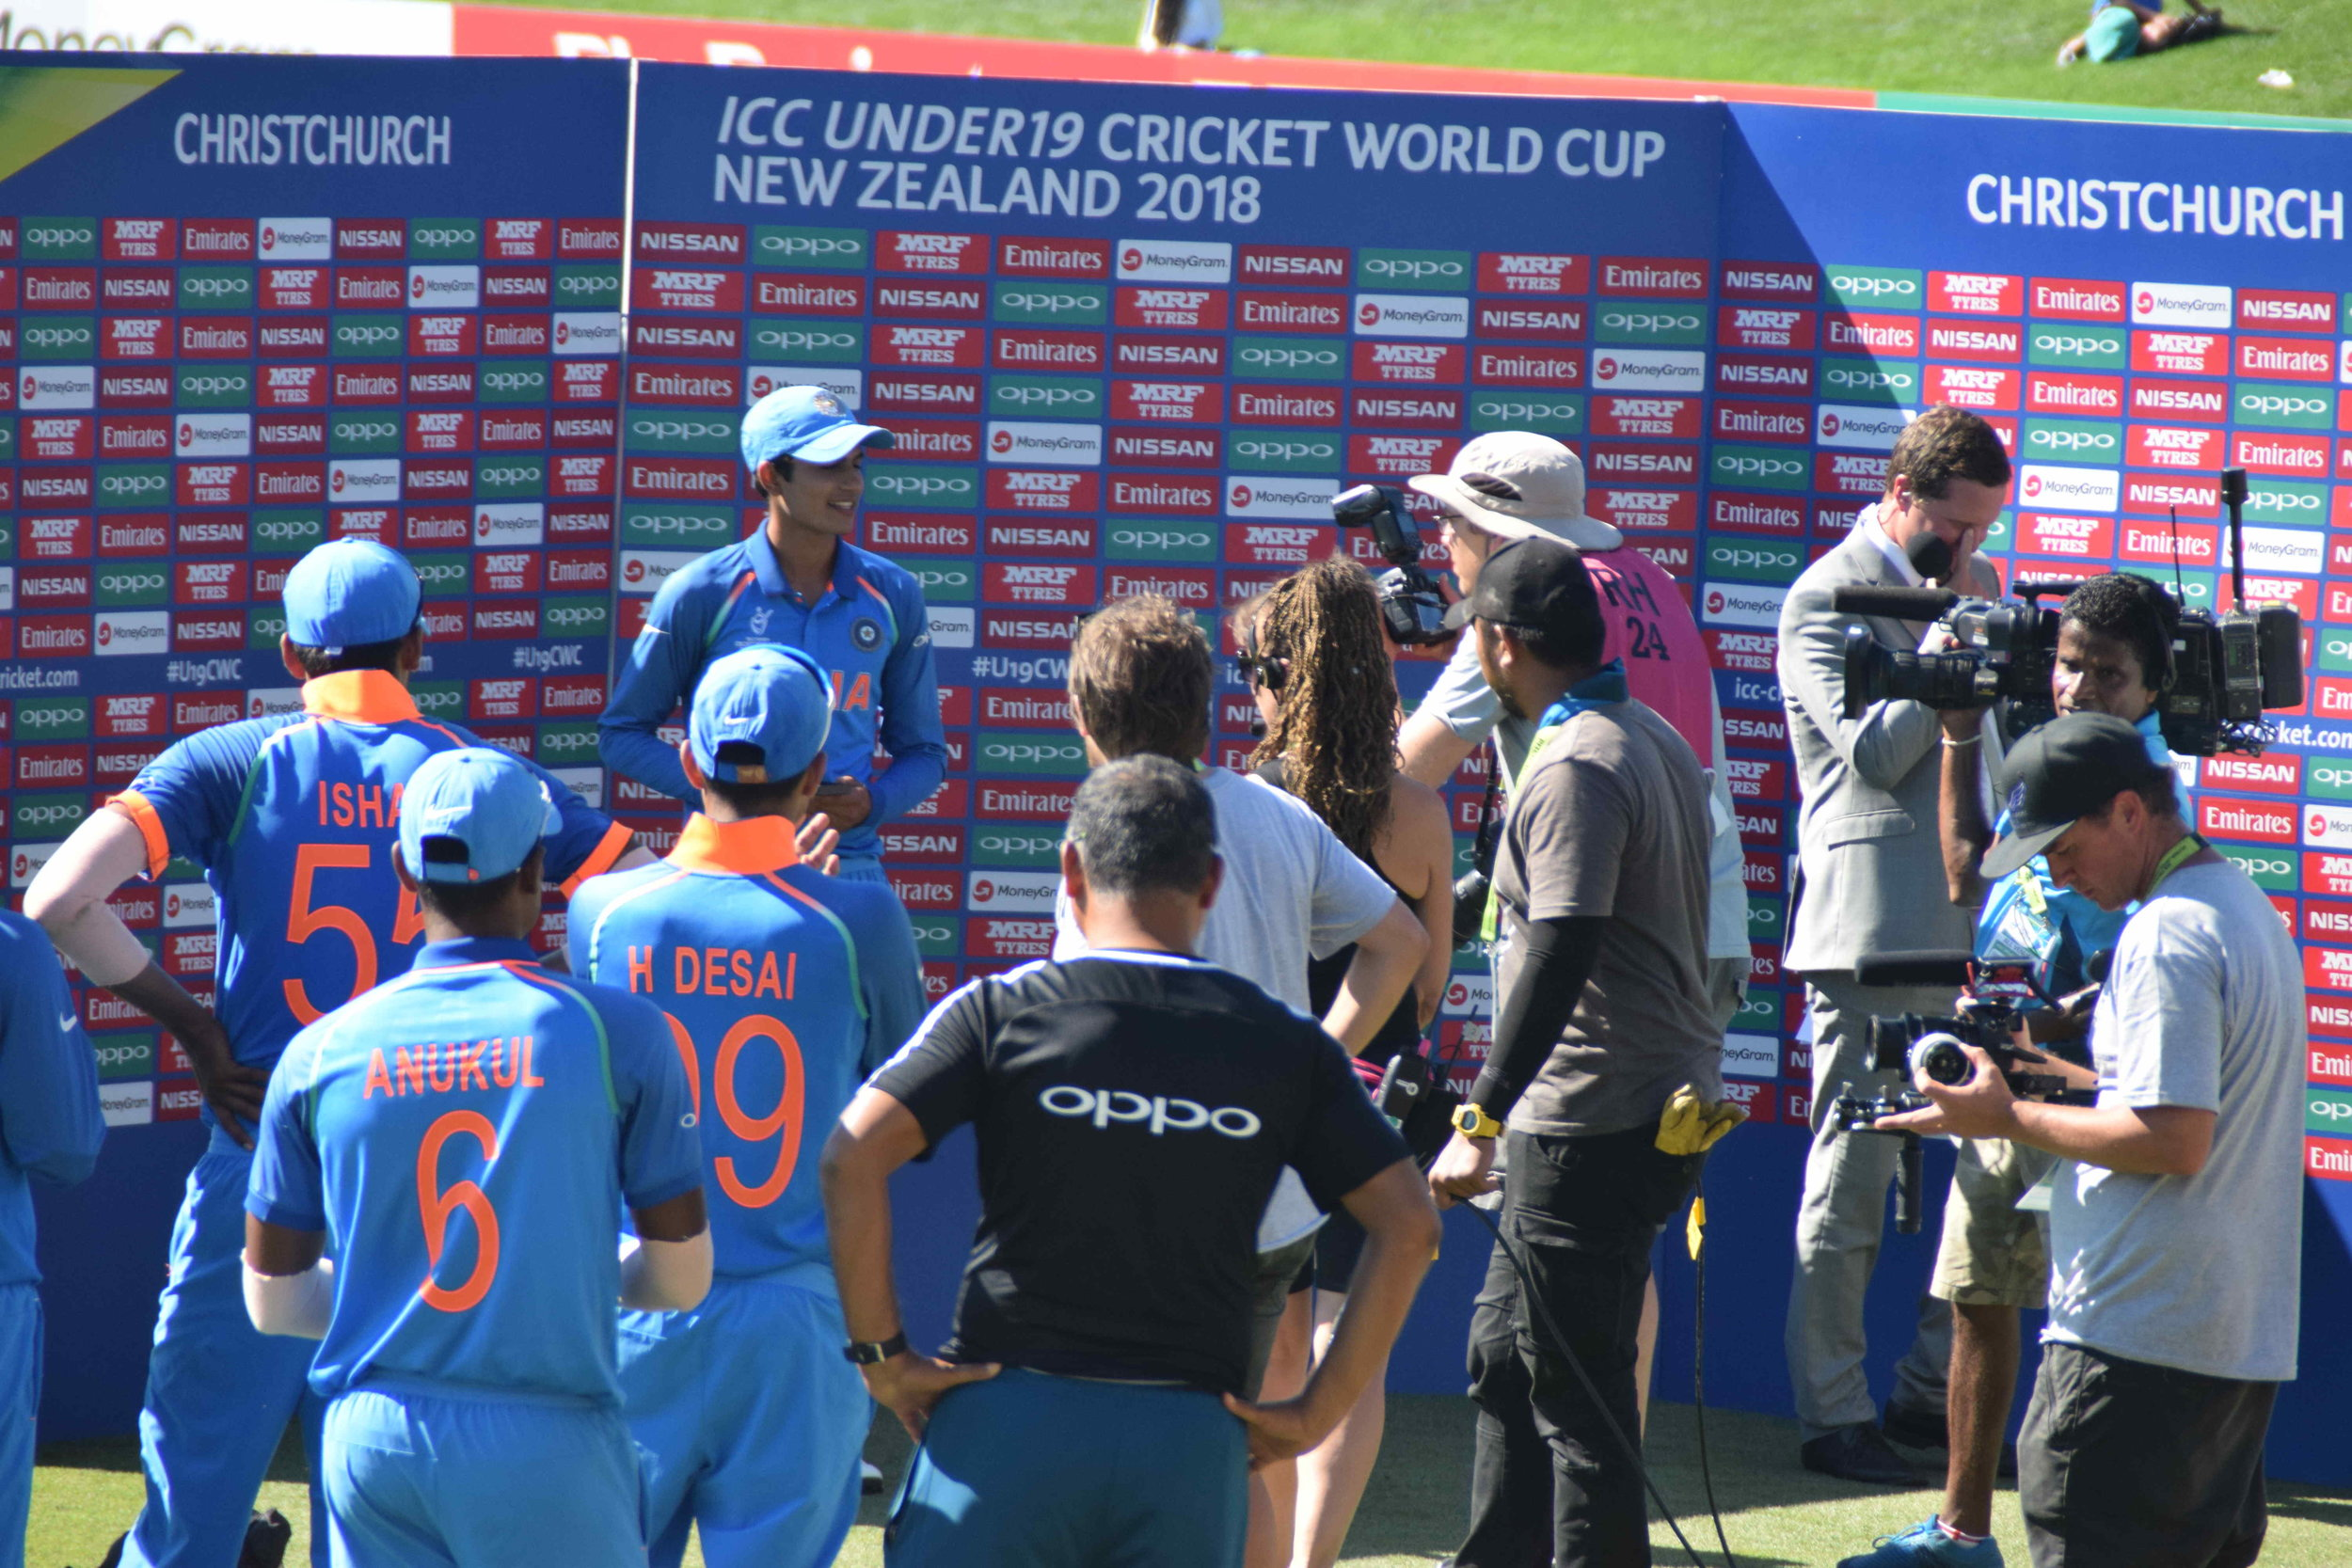 The Man-of-the-match and man-of-the-moment, Shubman Gill who scored an unbeaten 102, as India posted a formidable 272 in the semi-final